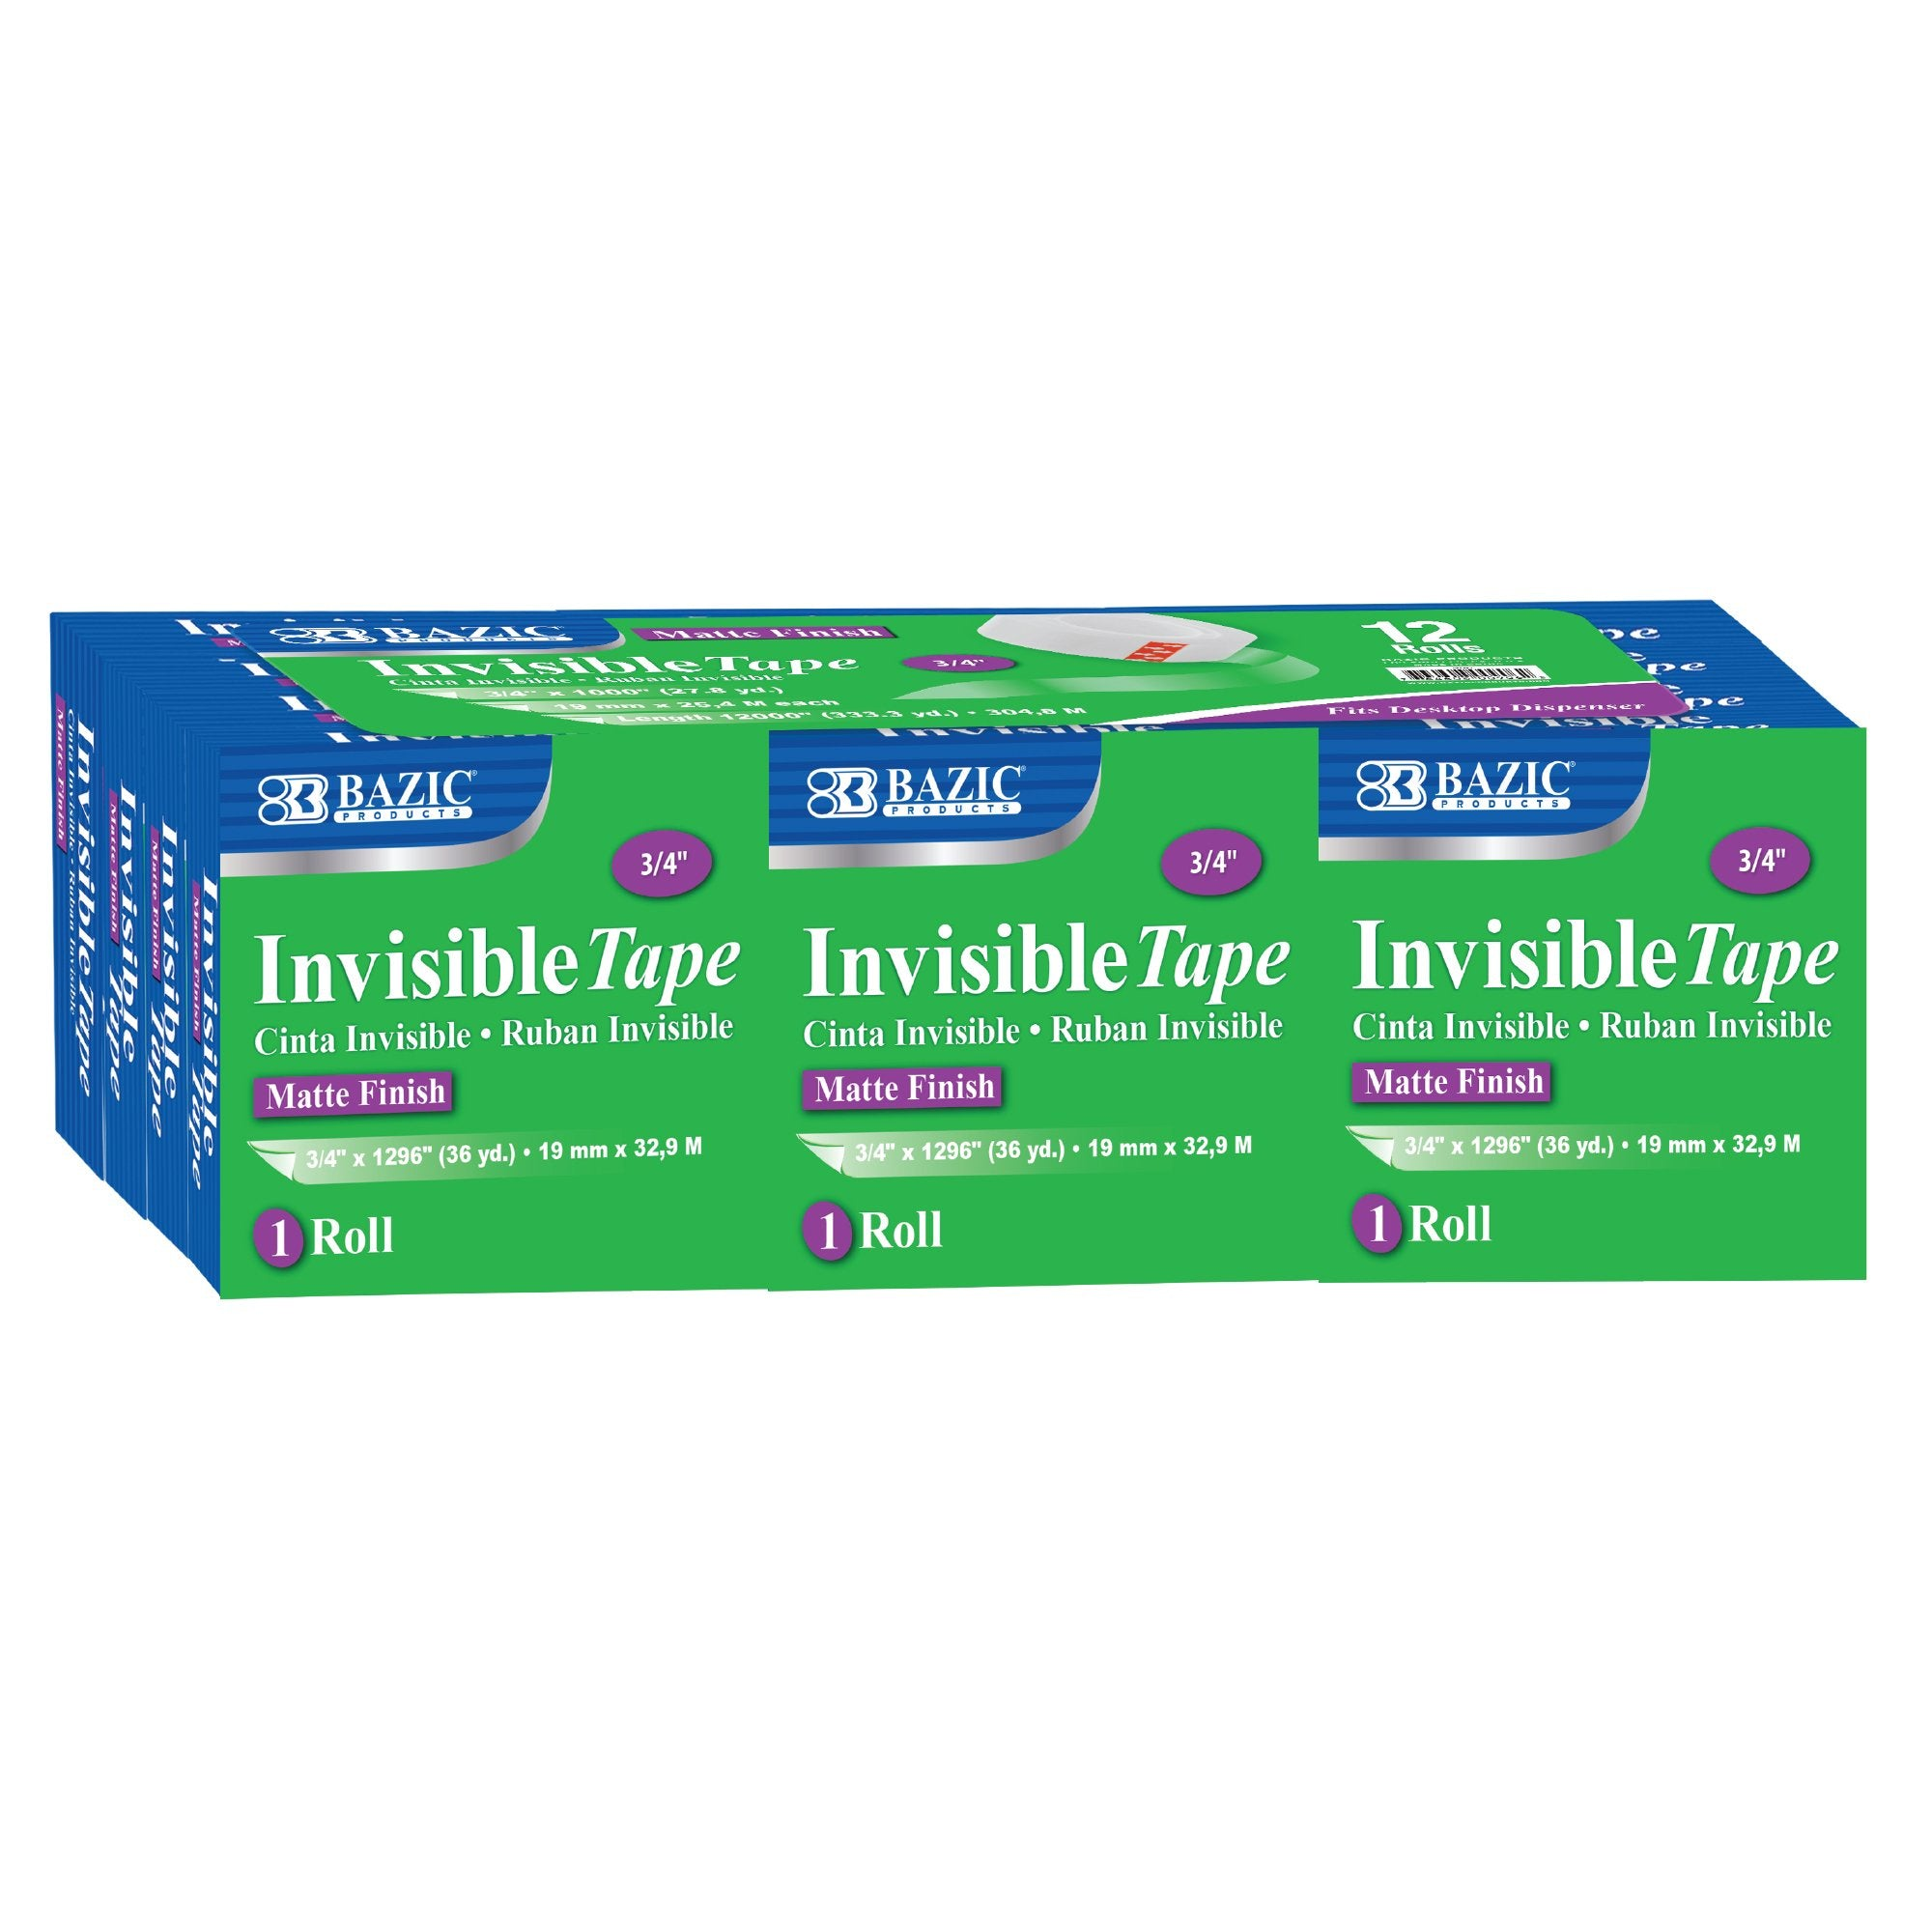 BAZIC 3/4 X 1296 Invisible Tape Refill (12/Pack)